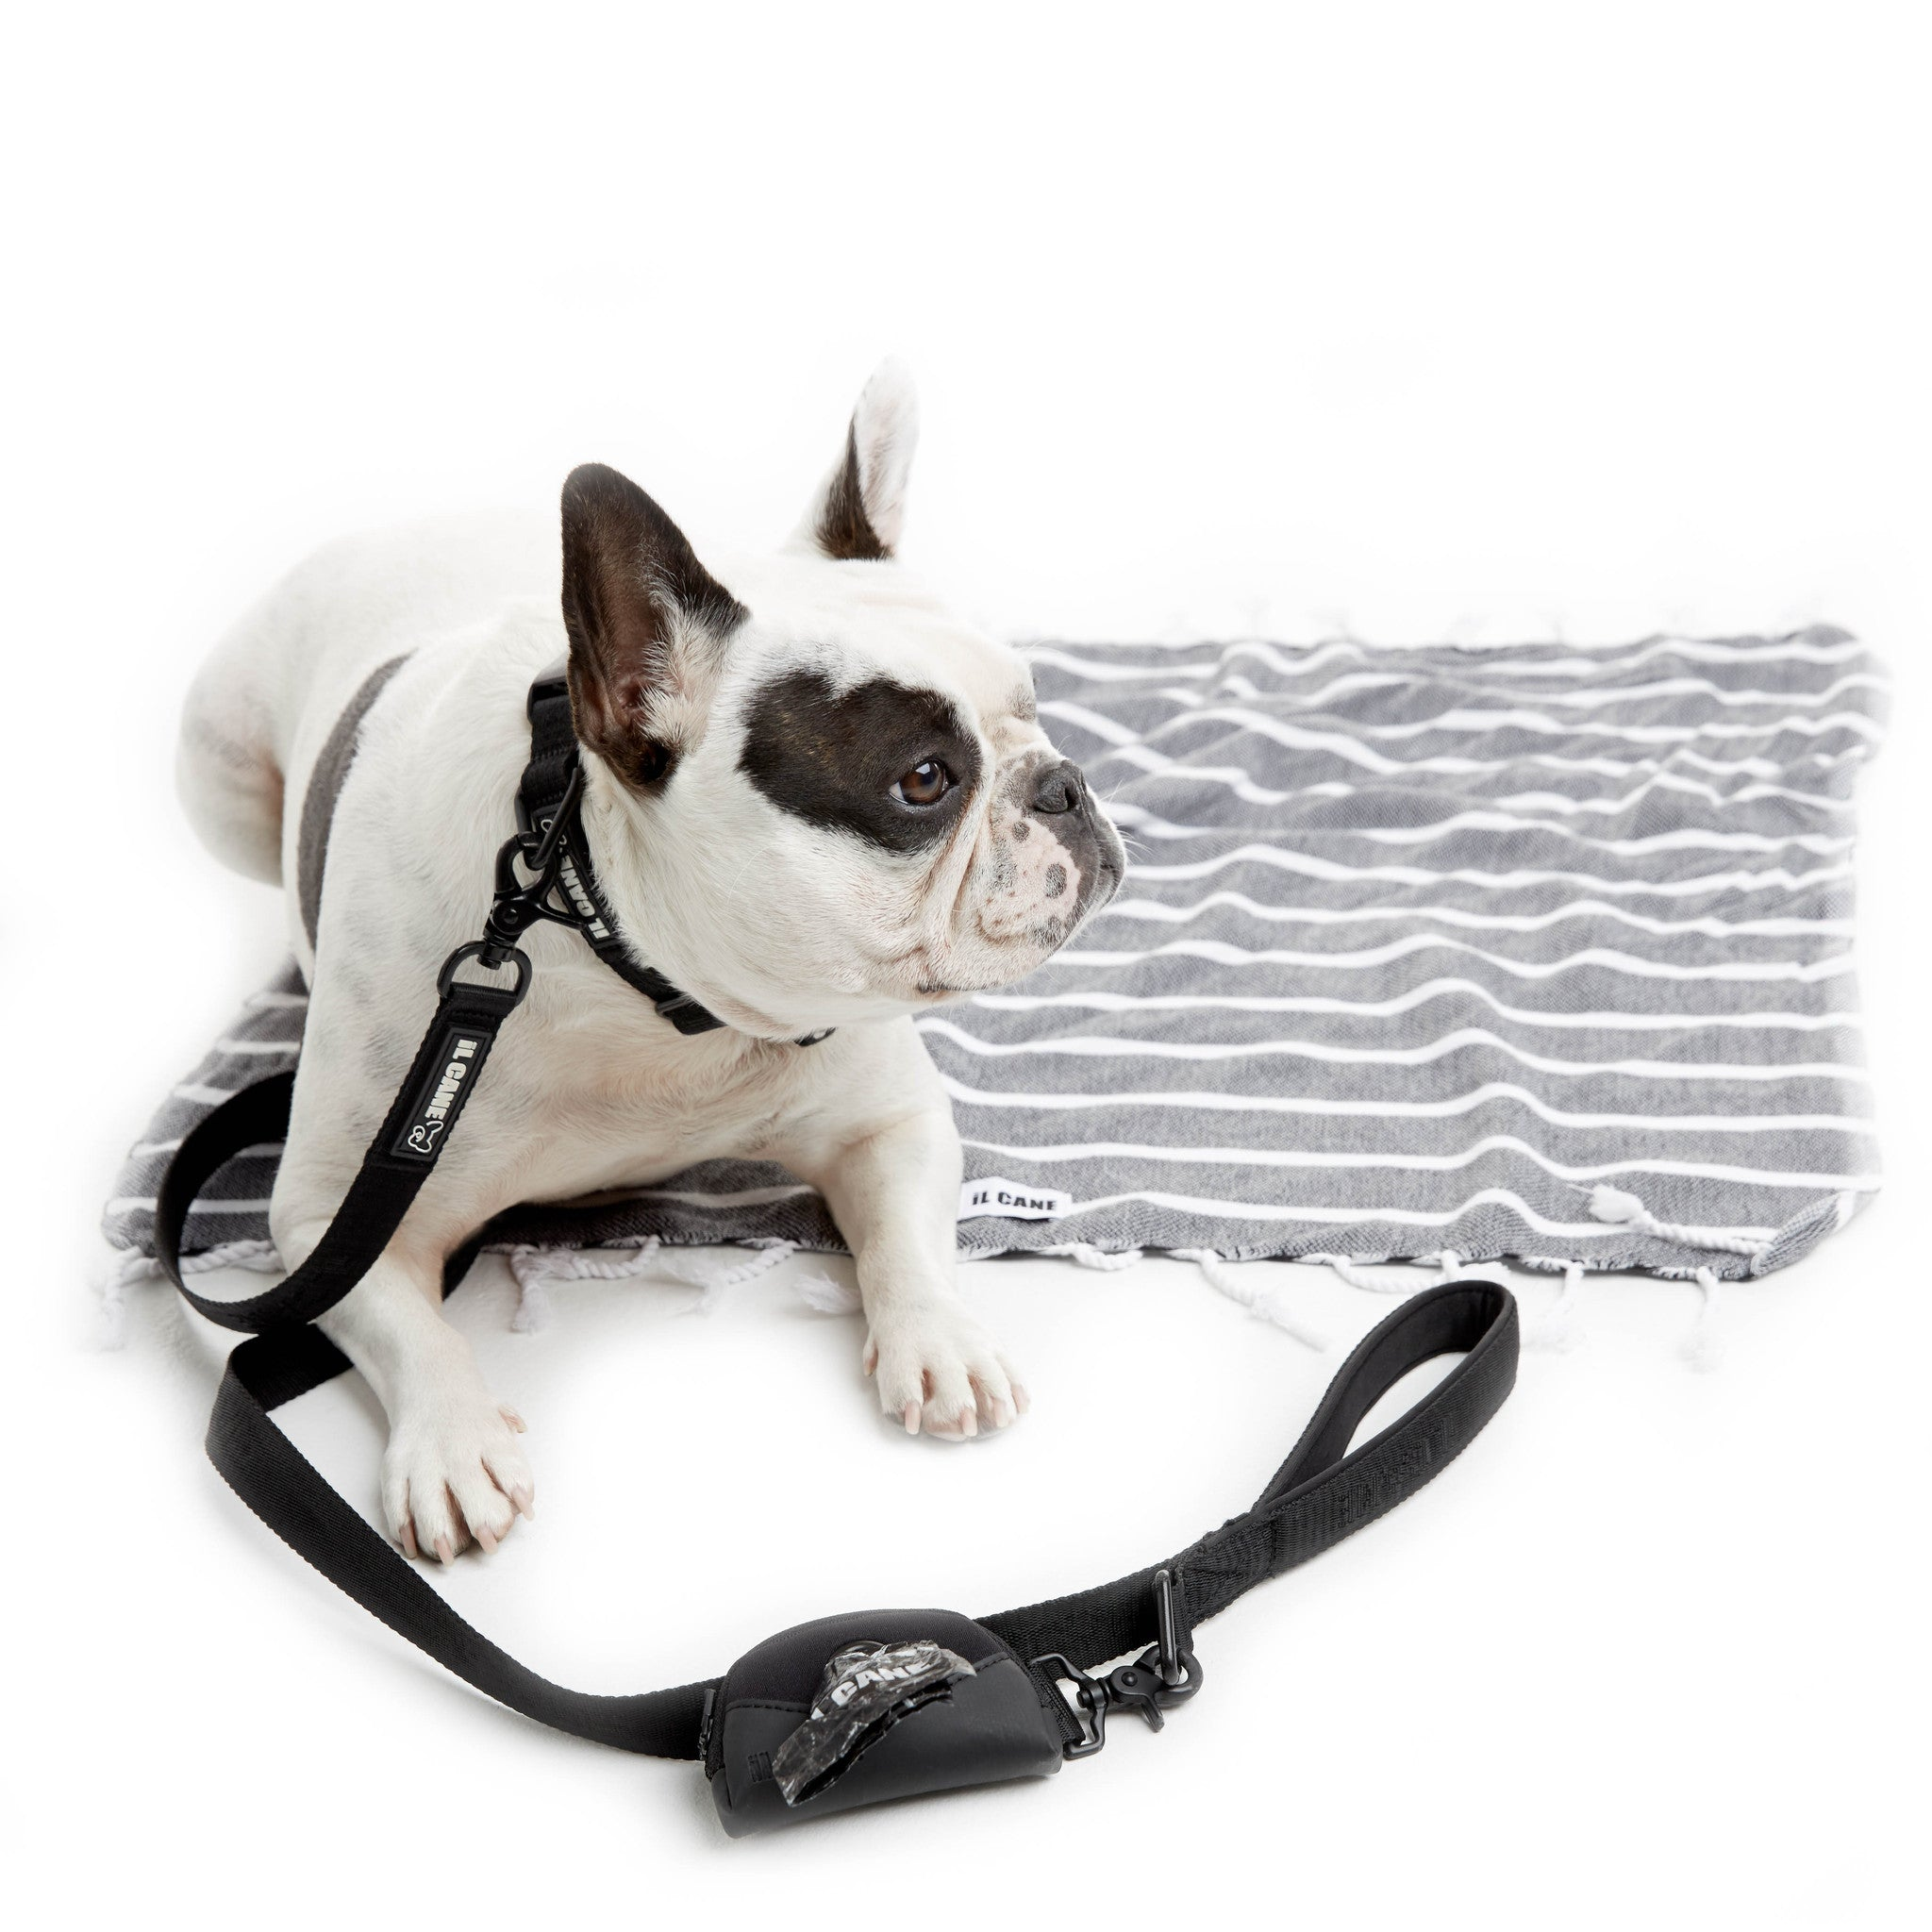 iL CANE - Breezy Adjustable Collar